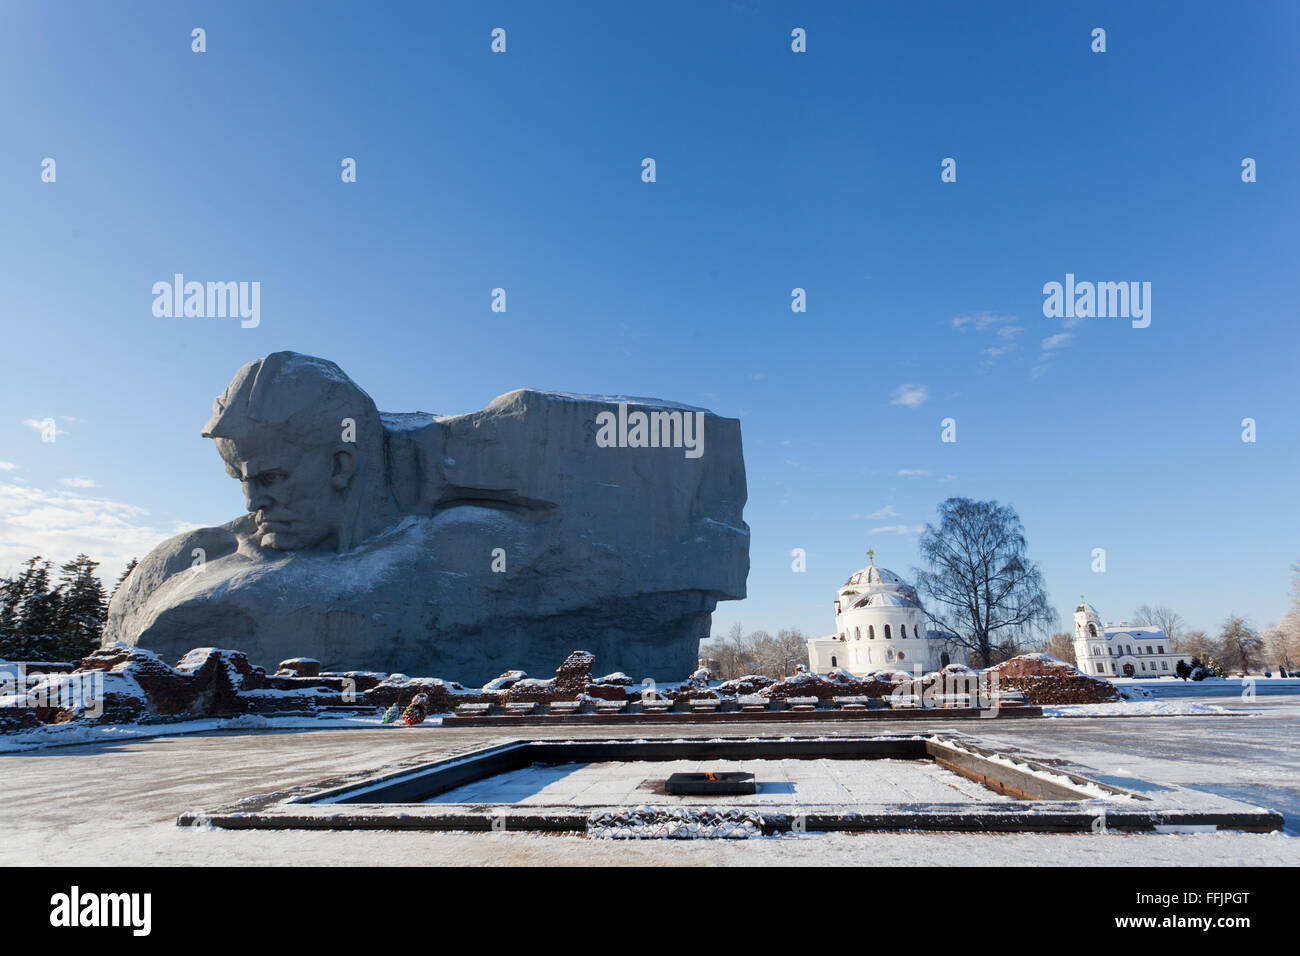 Monument Courage and an eternal flame in Brest fortress in winter day, Belarus - Stock Image